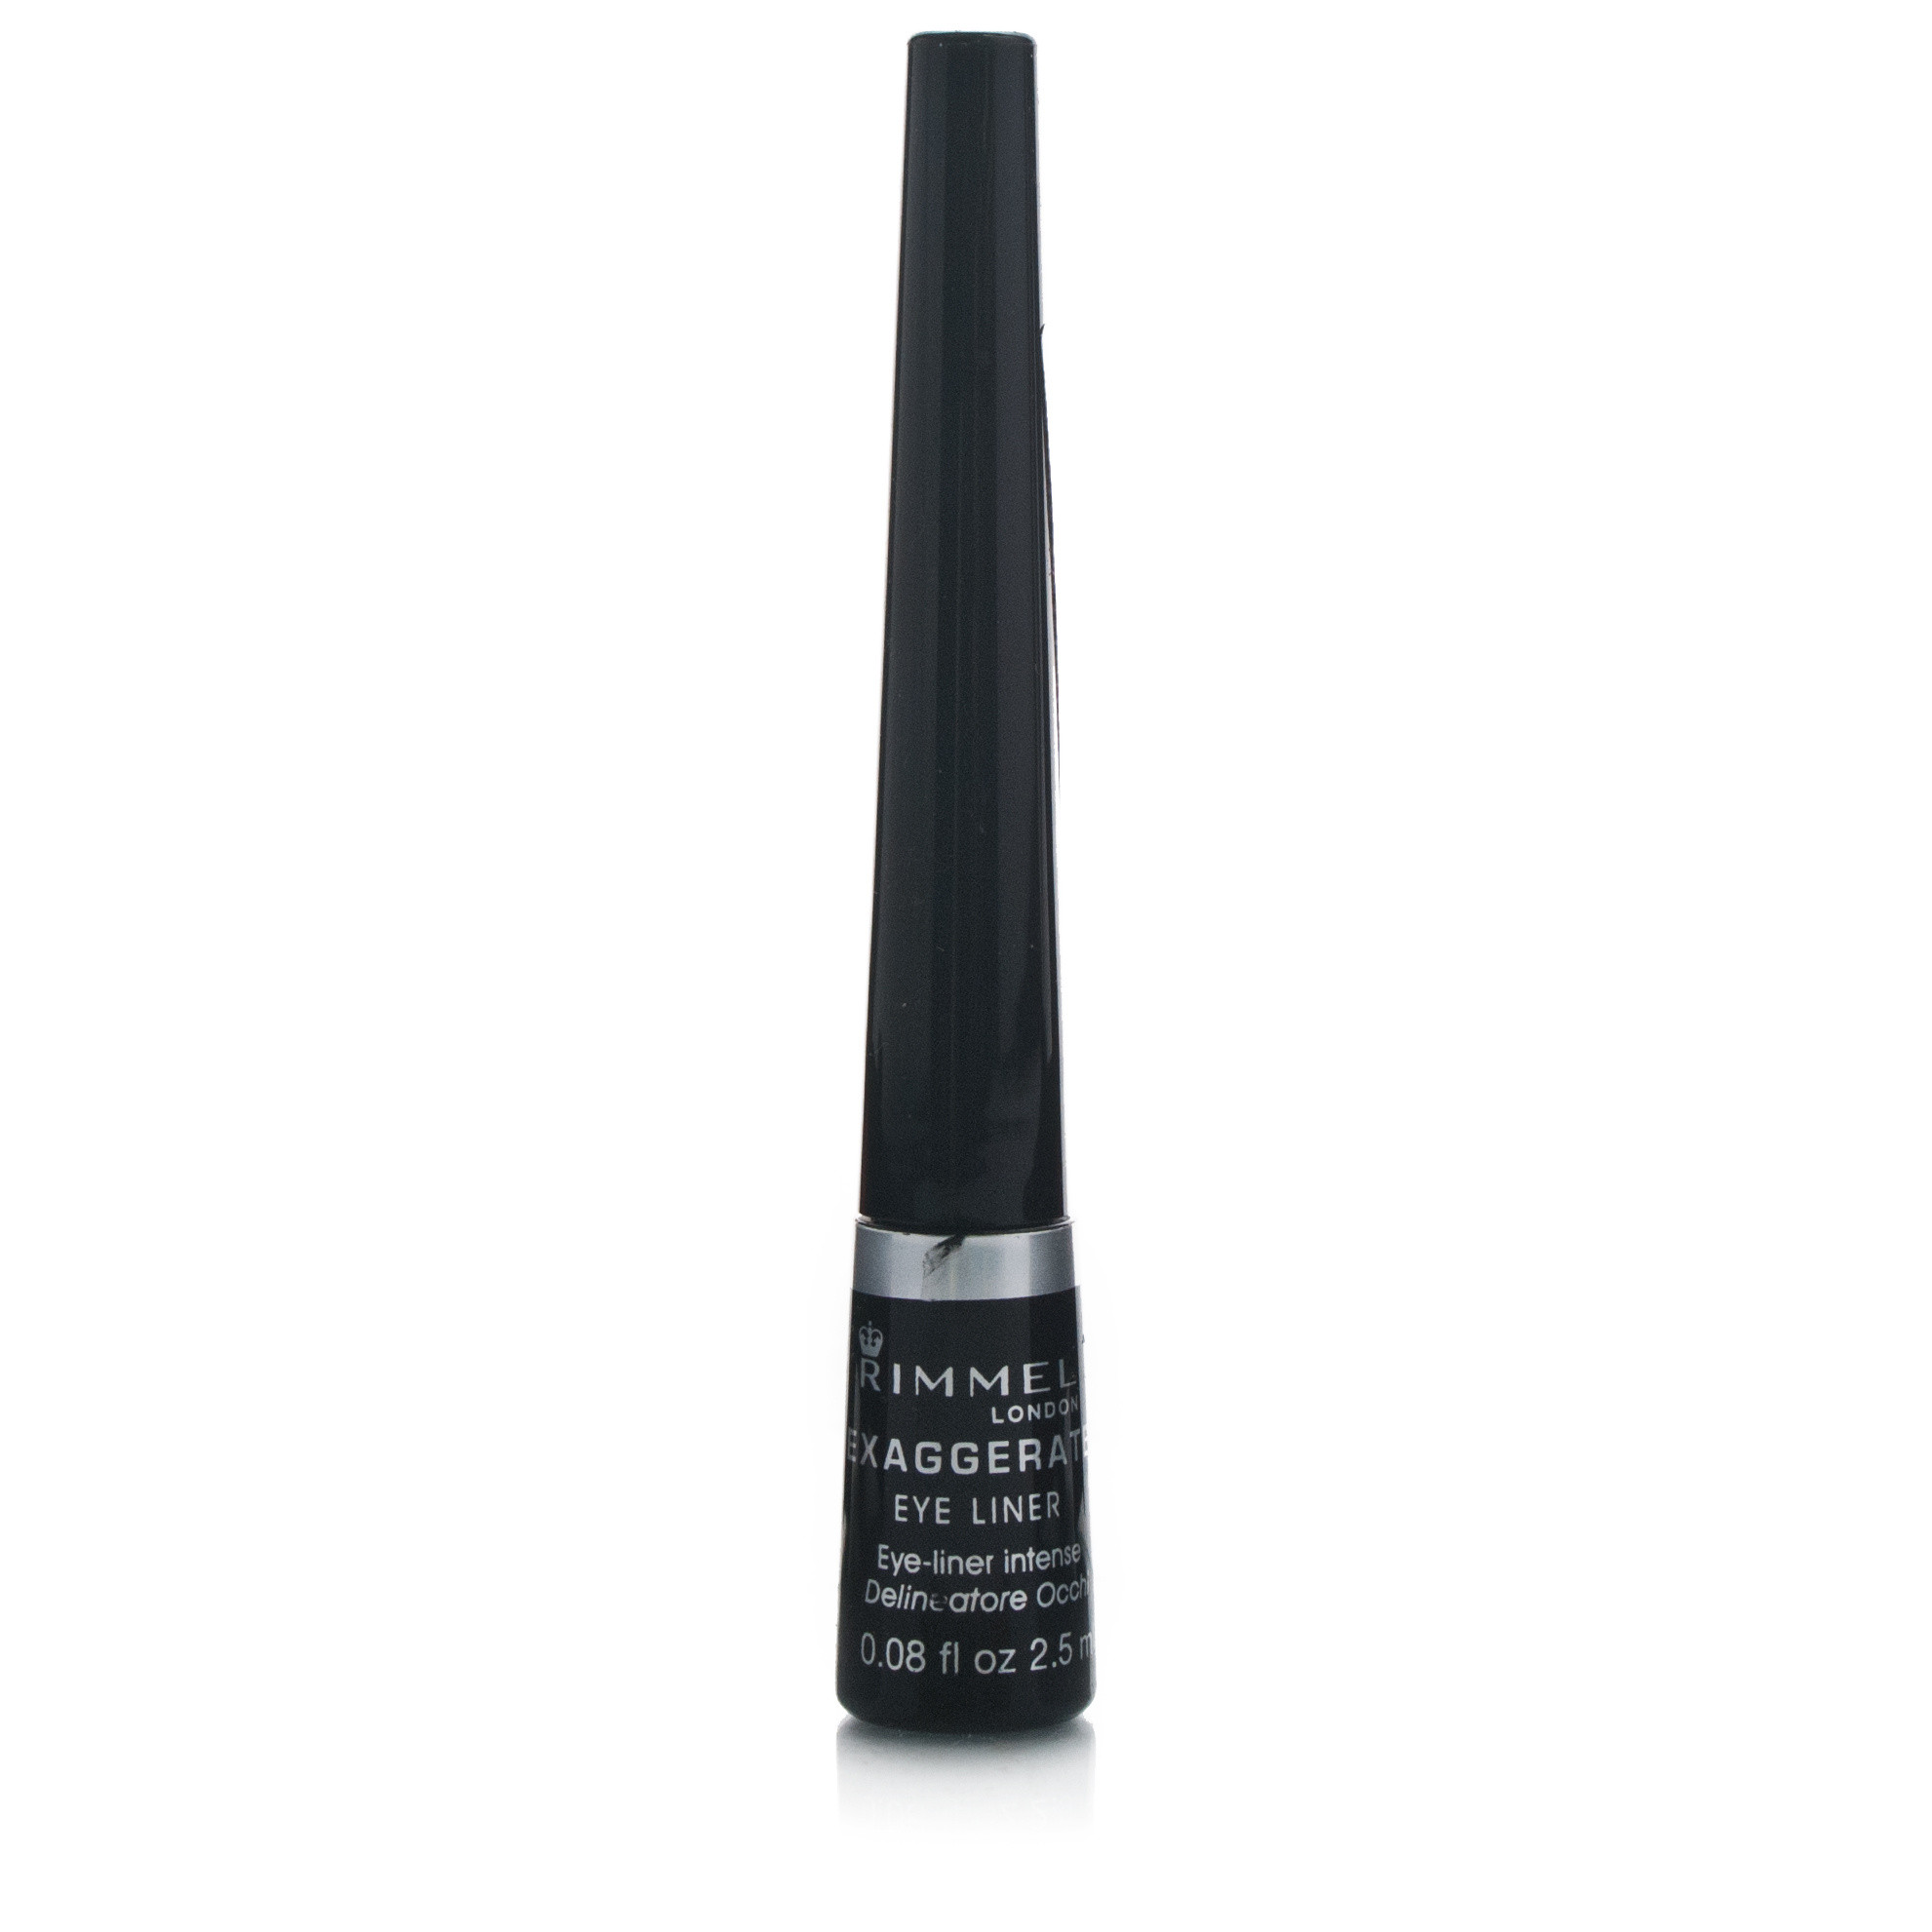 Rimmel Exaggerate Eye Liner in Black Black